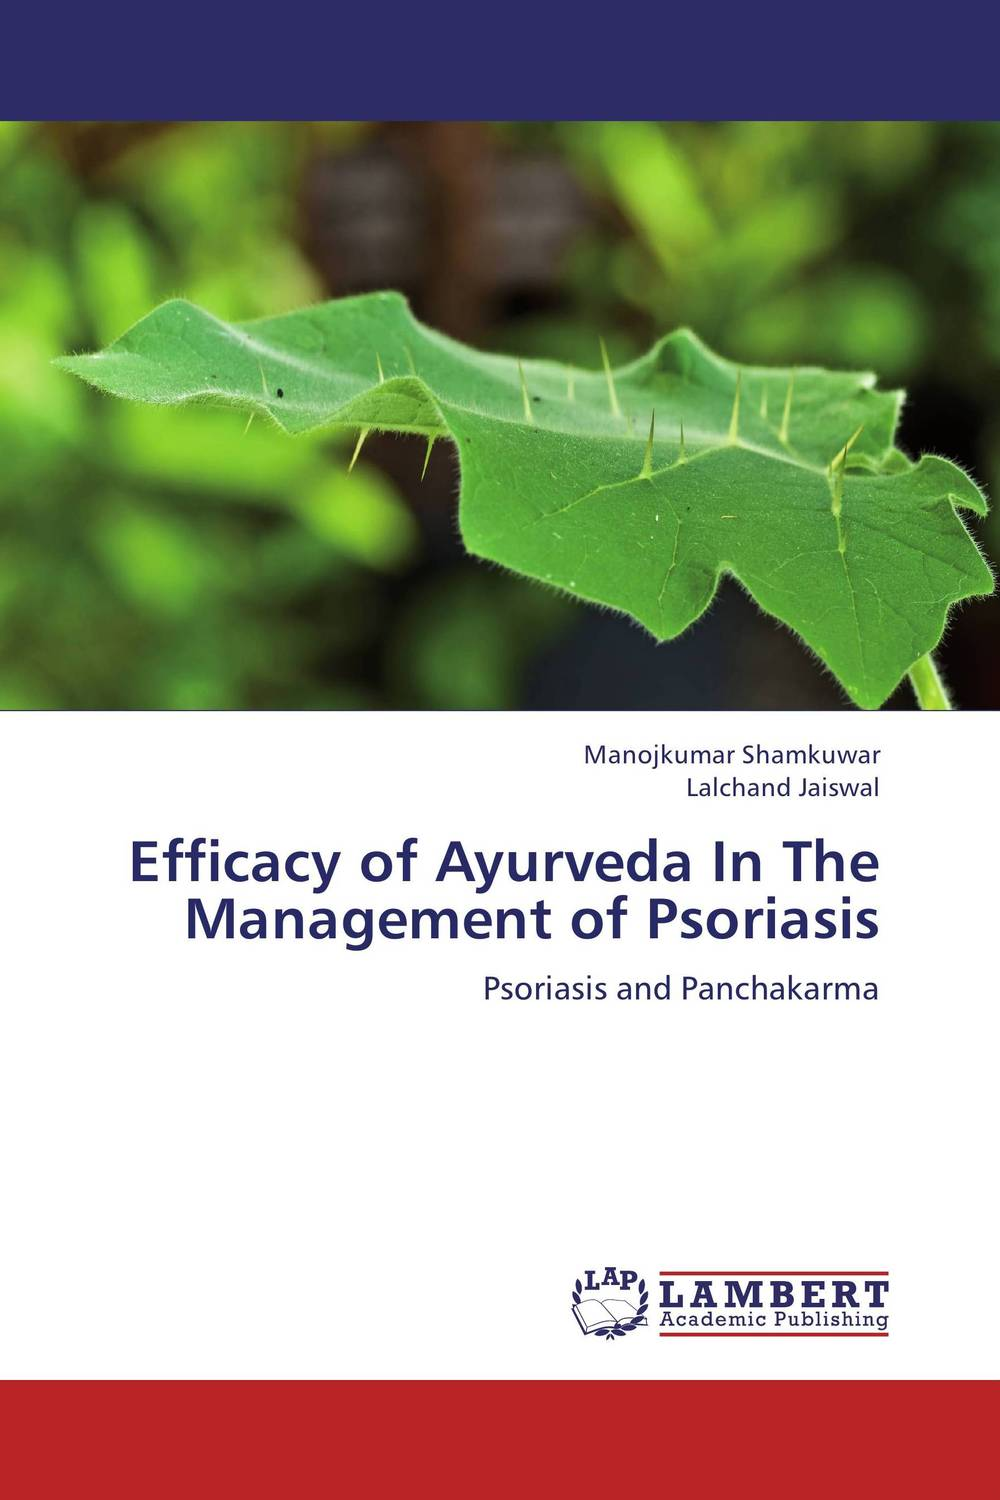 Efficacy of Ayurveda In The Management of Psoriasis luxury ayurveda полотенце махровое 70 140 luxury ayurveda ivory